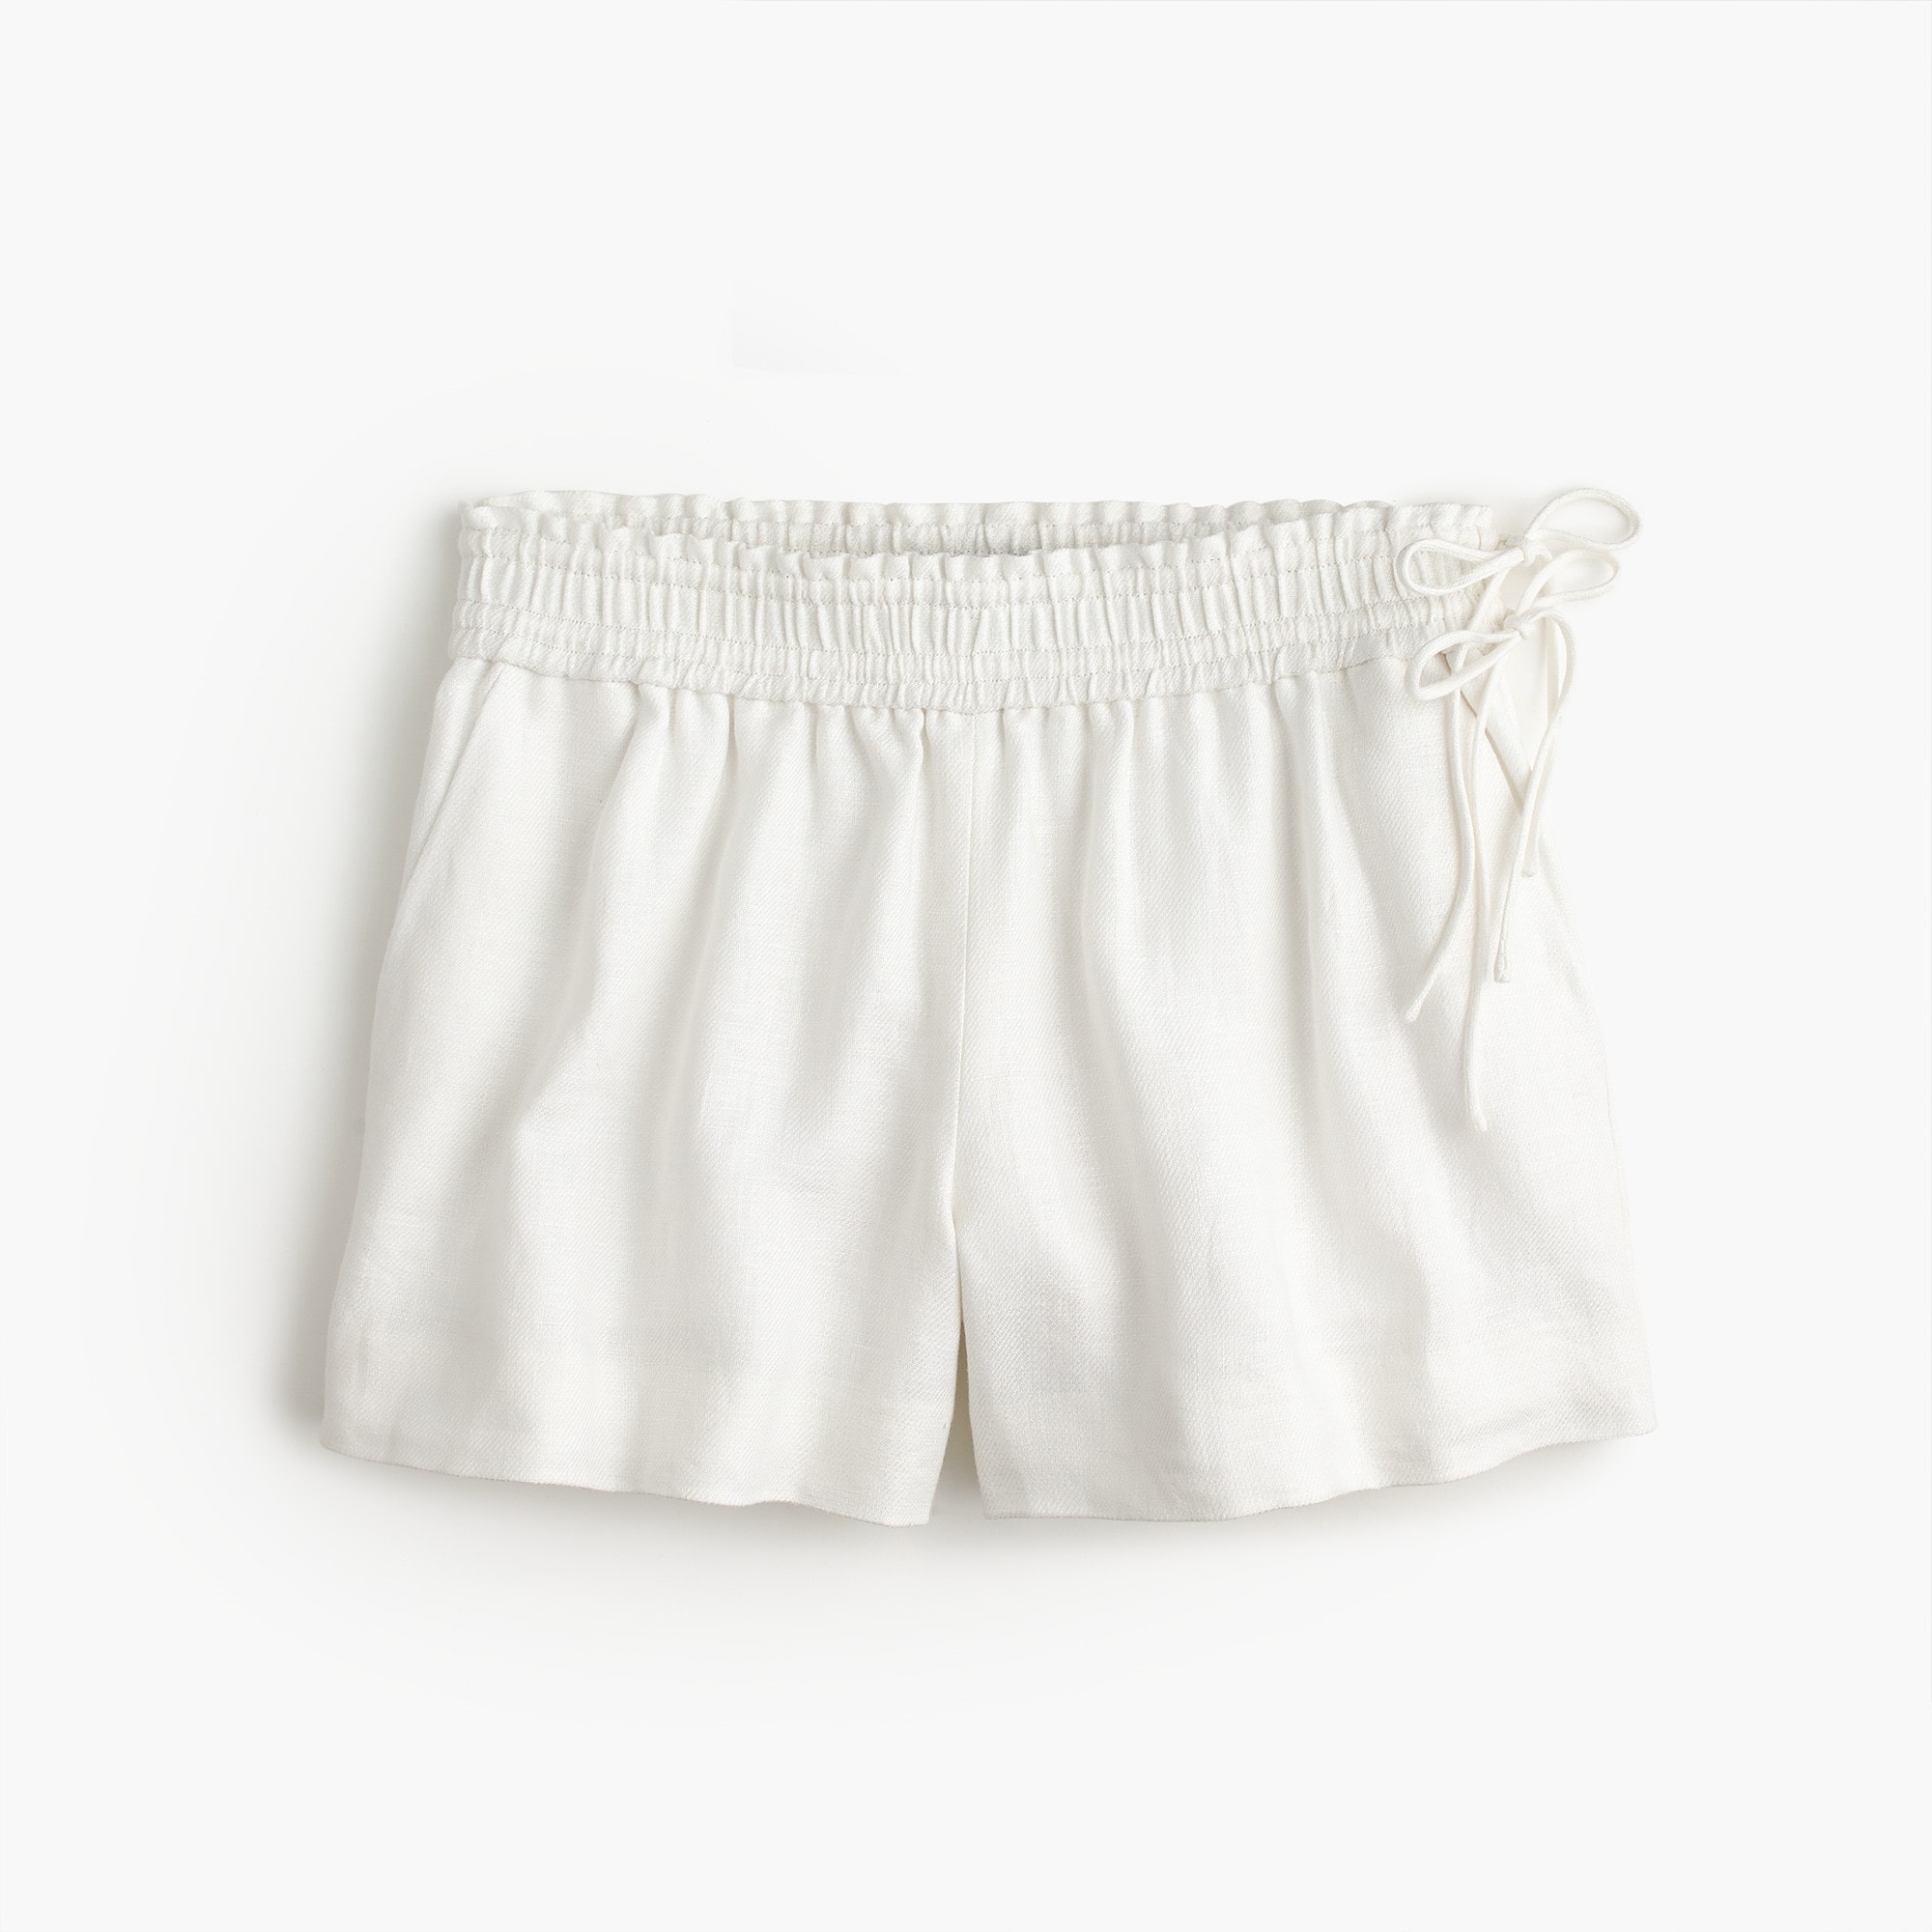 women's linen short with side ties - women's shorts